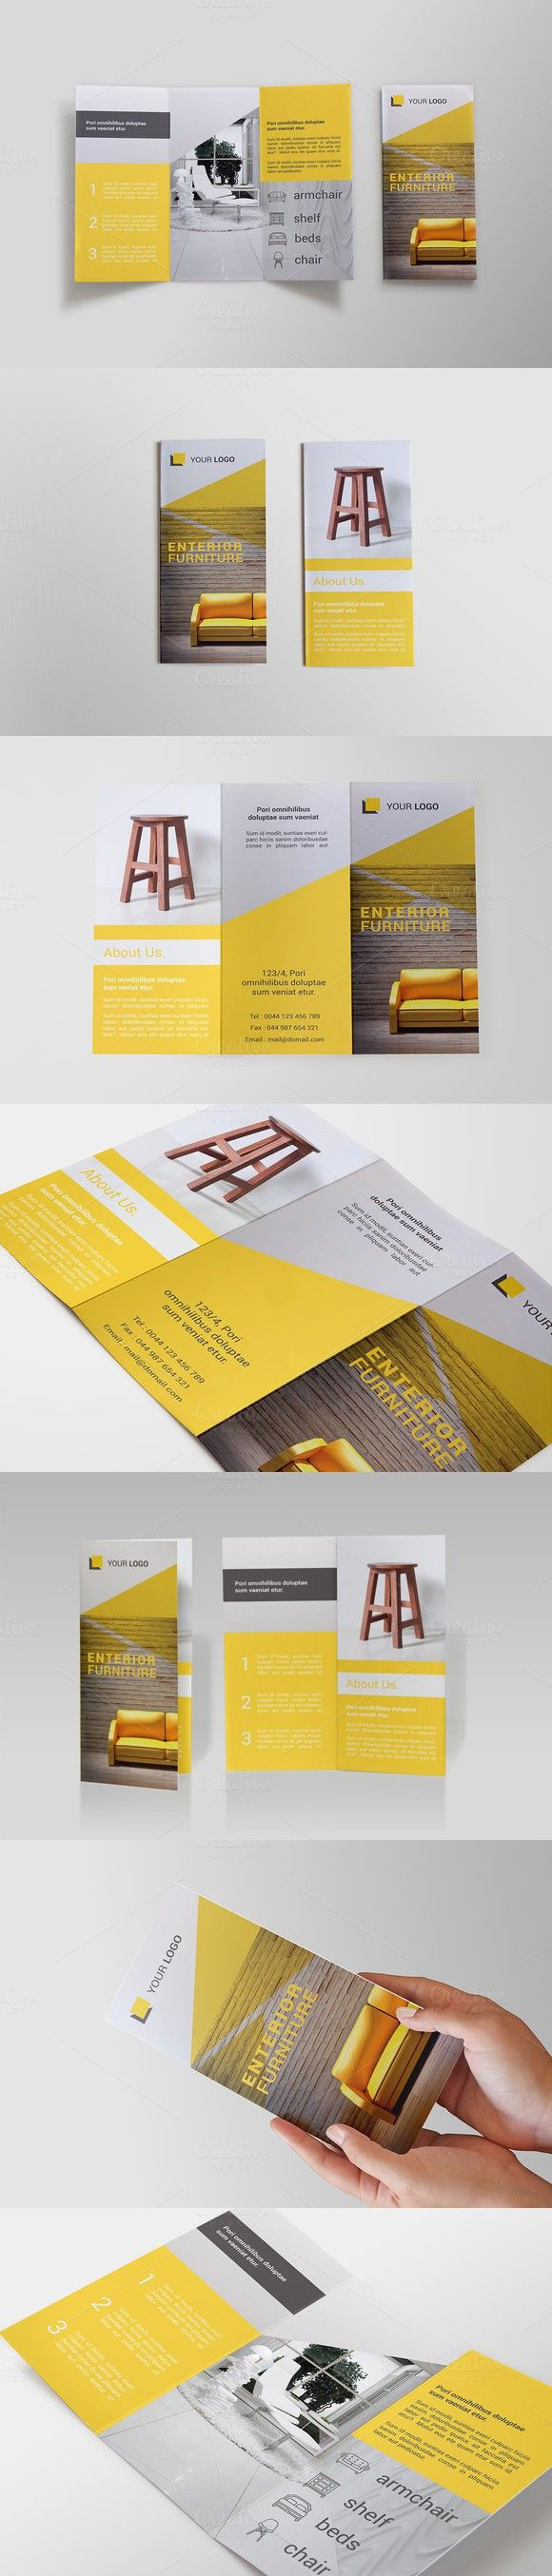 Furniture Tri-fold Brochure - Bms